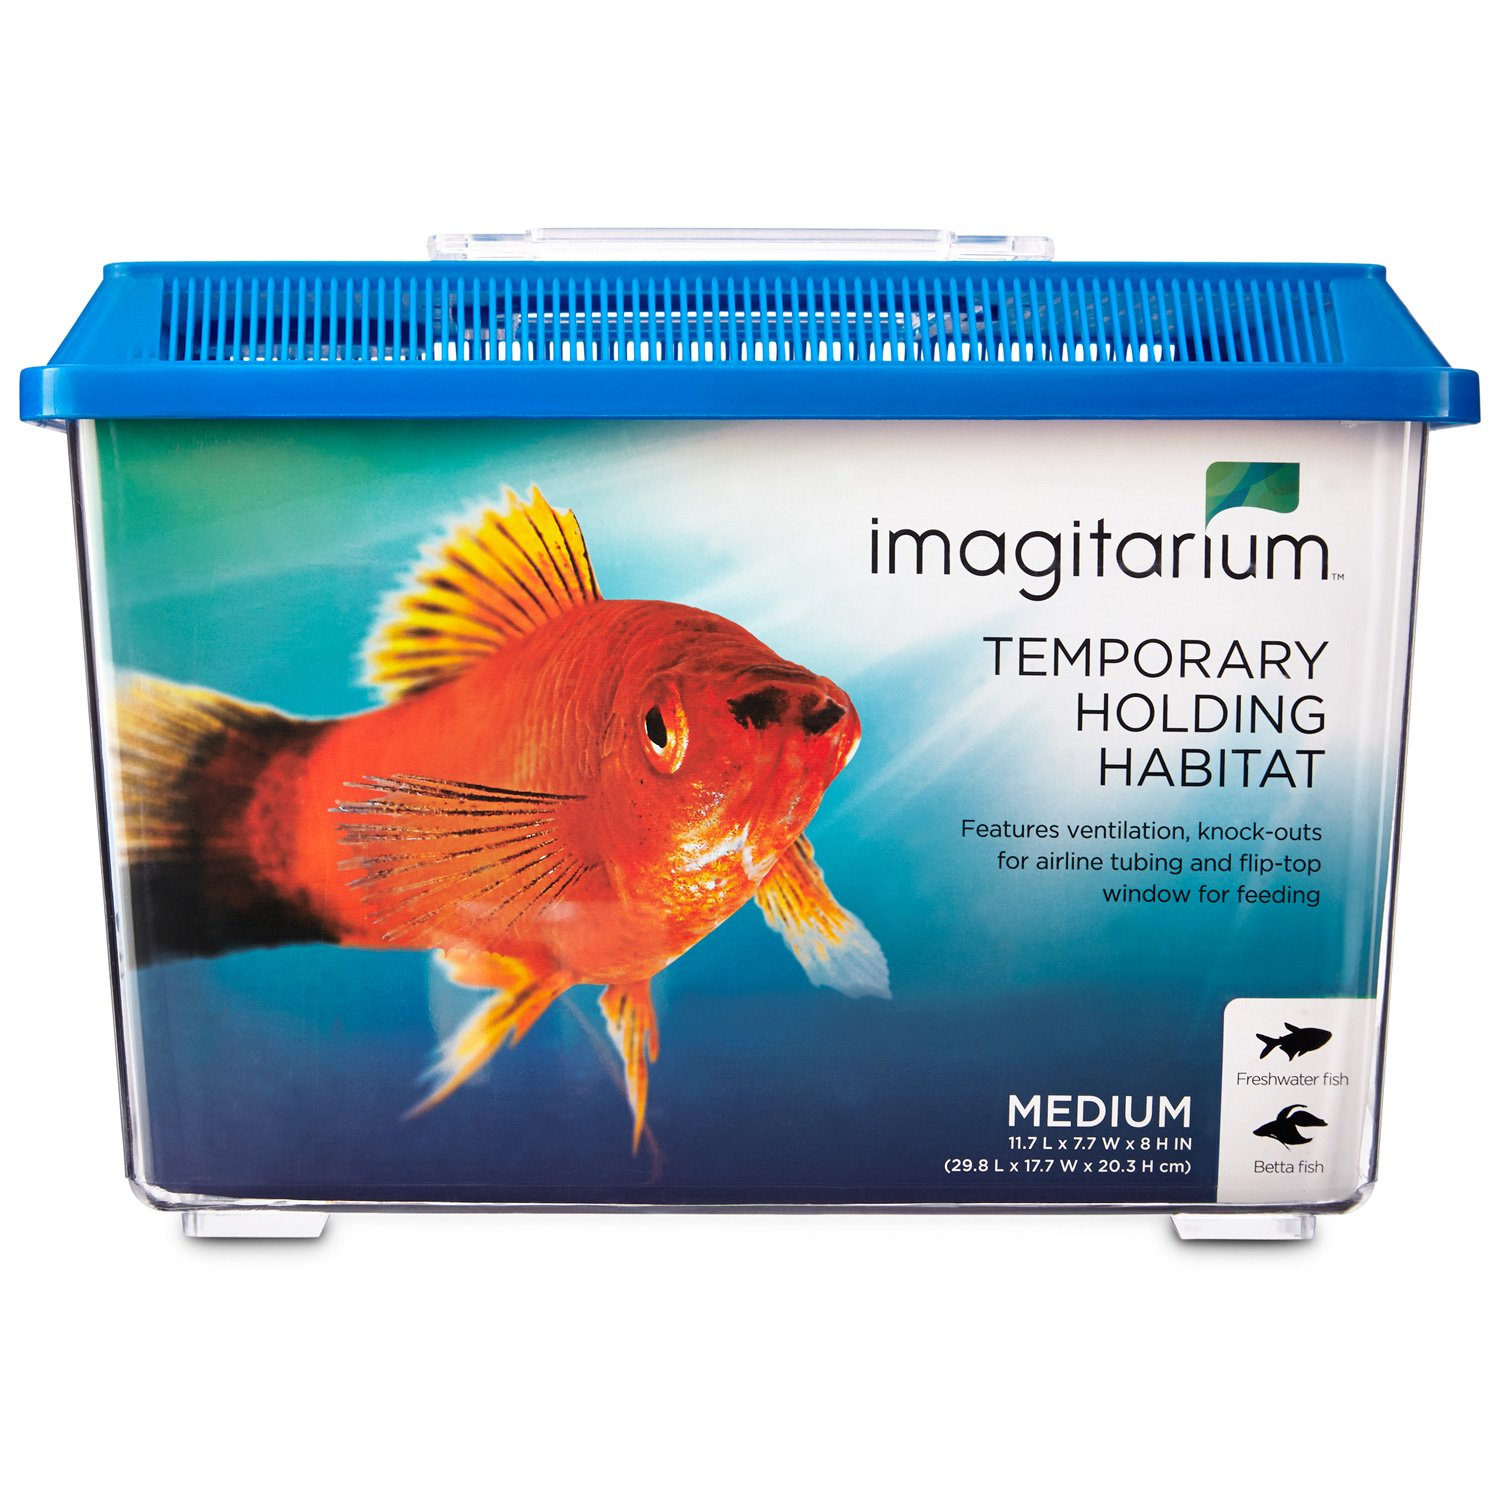 Imagitarium pet keeper for aquarium fish medium petco for Betta fish tanks petco